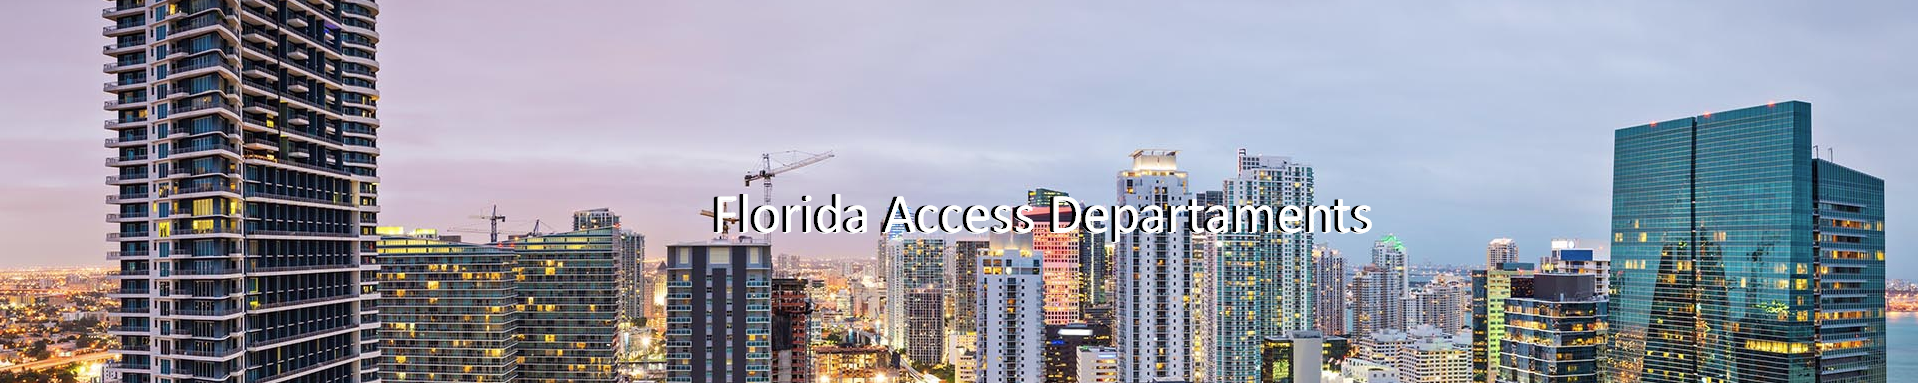 florida Access Departament